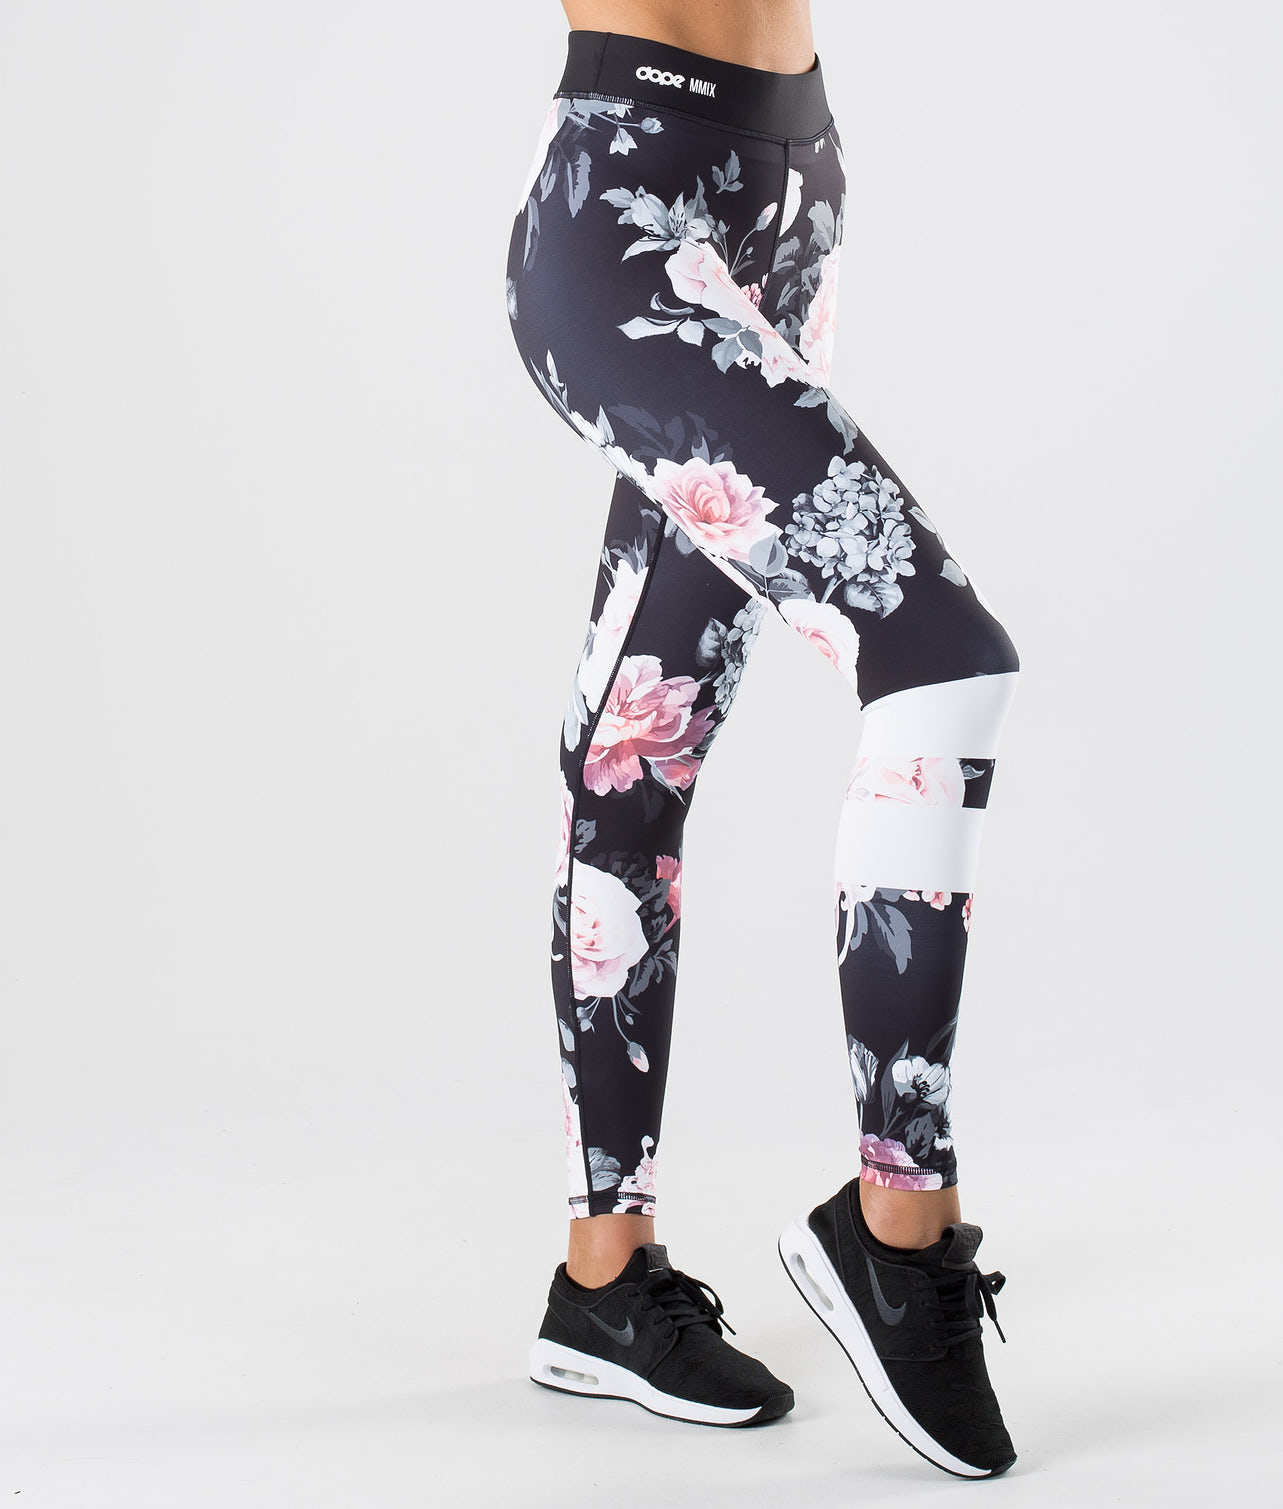 Dope Razor Leggings Pink Flower